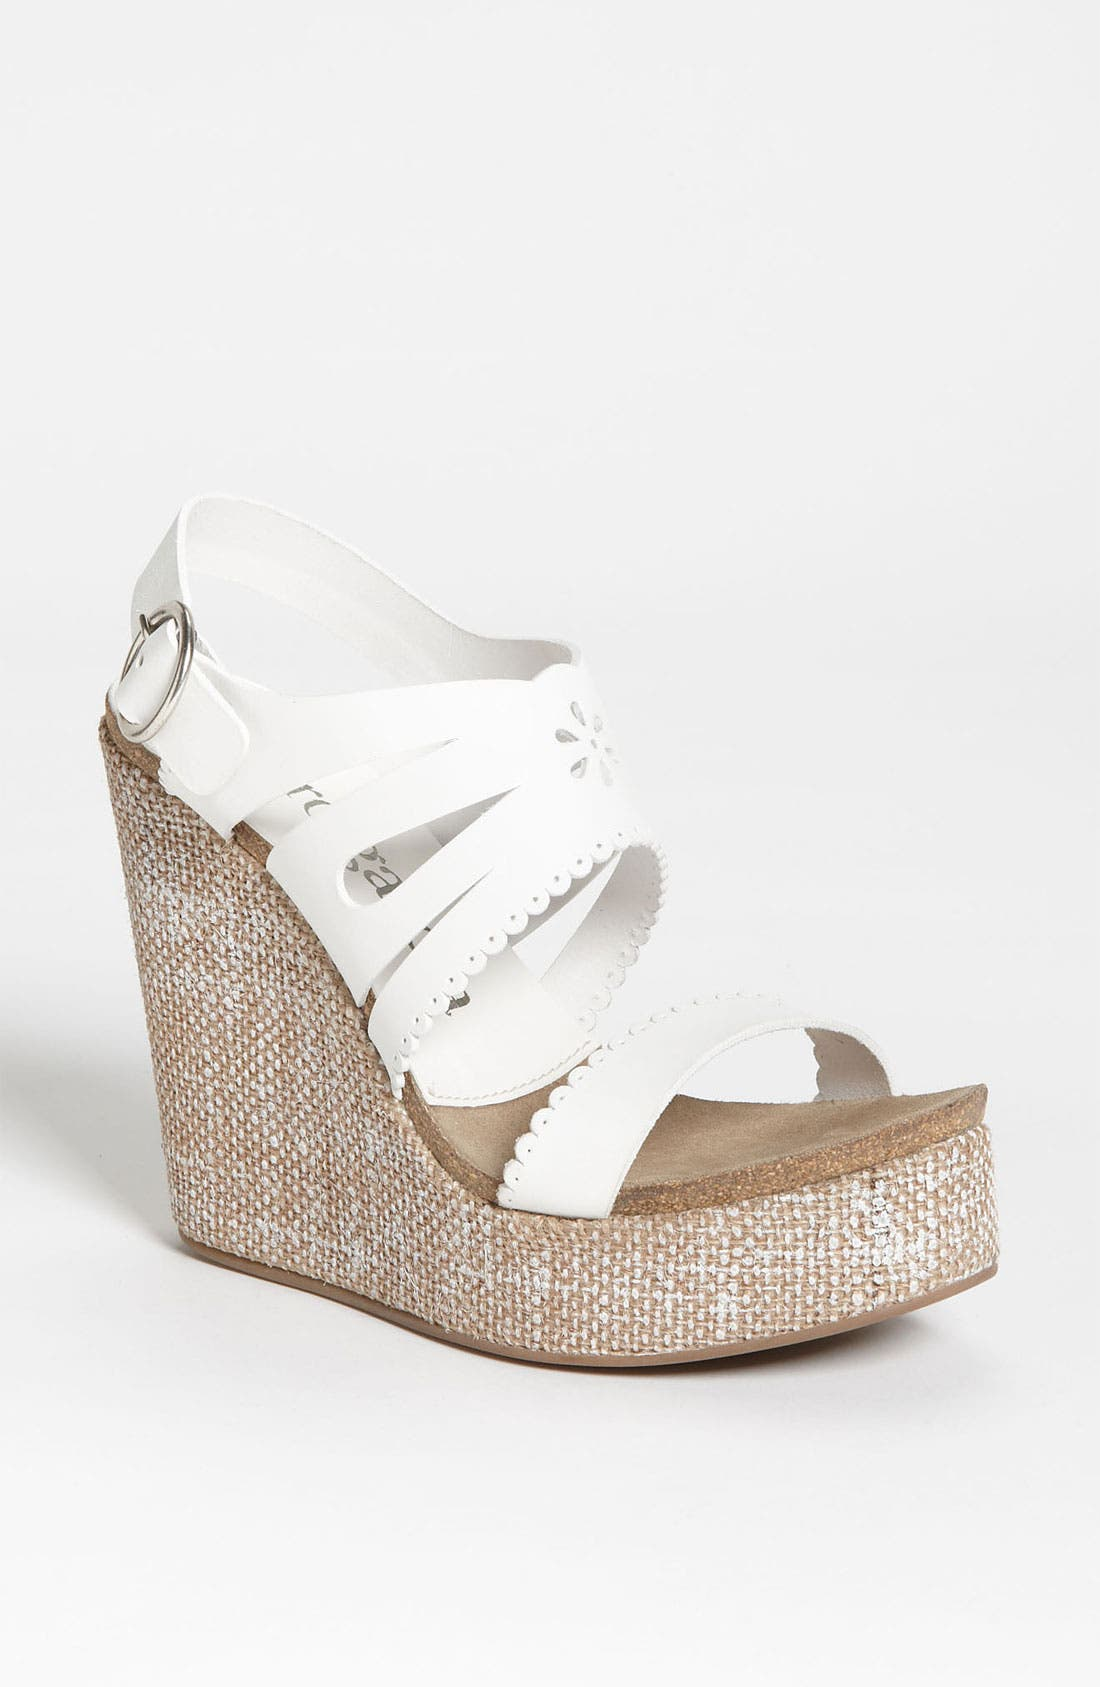 Alternate Image 1 Selected - Pedro Garcia 'Ailyn' Wedge Sandal